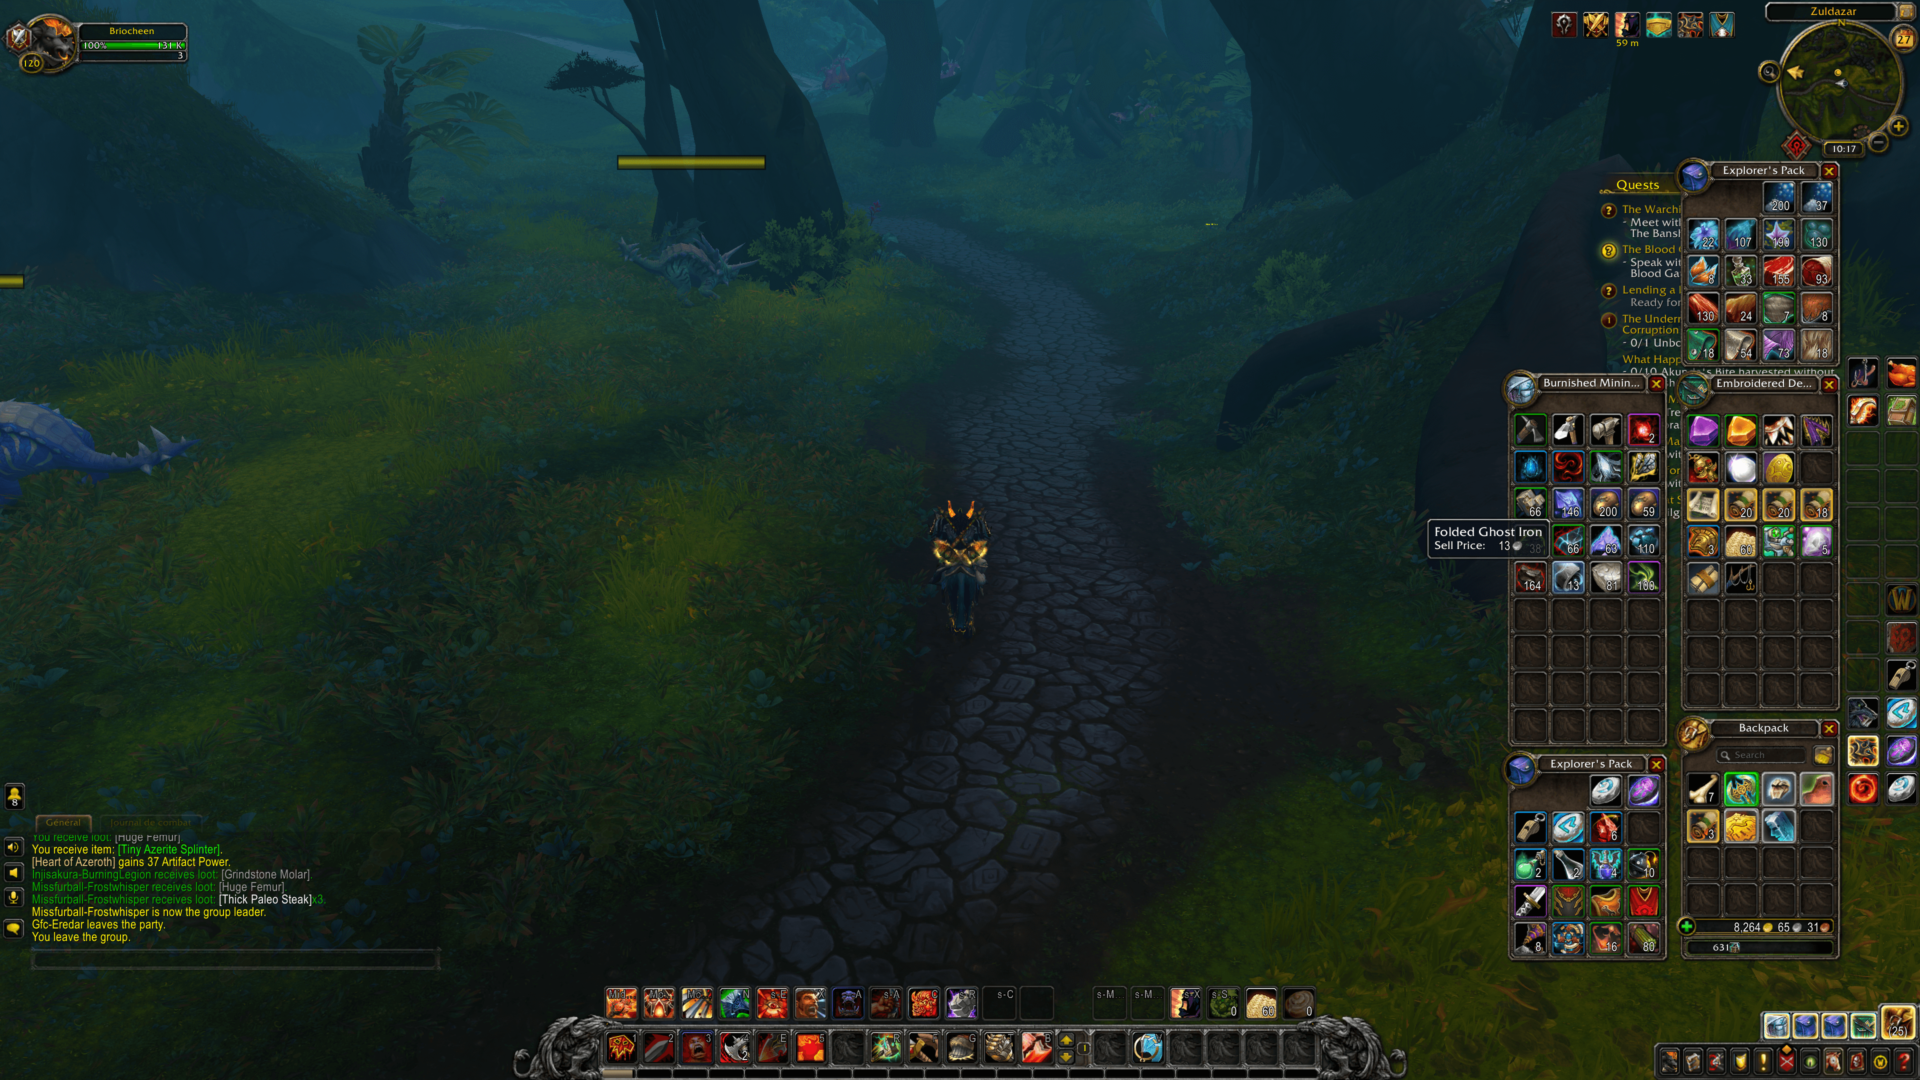 Inventory screenshot of World of Warcraft video game interface.